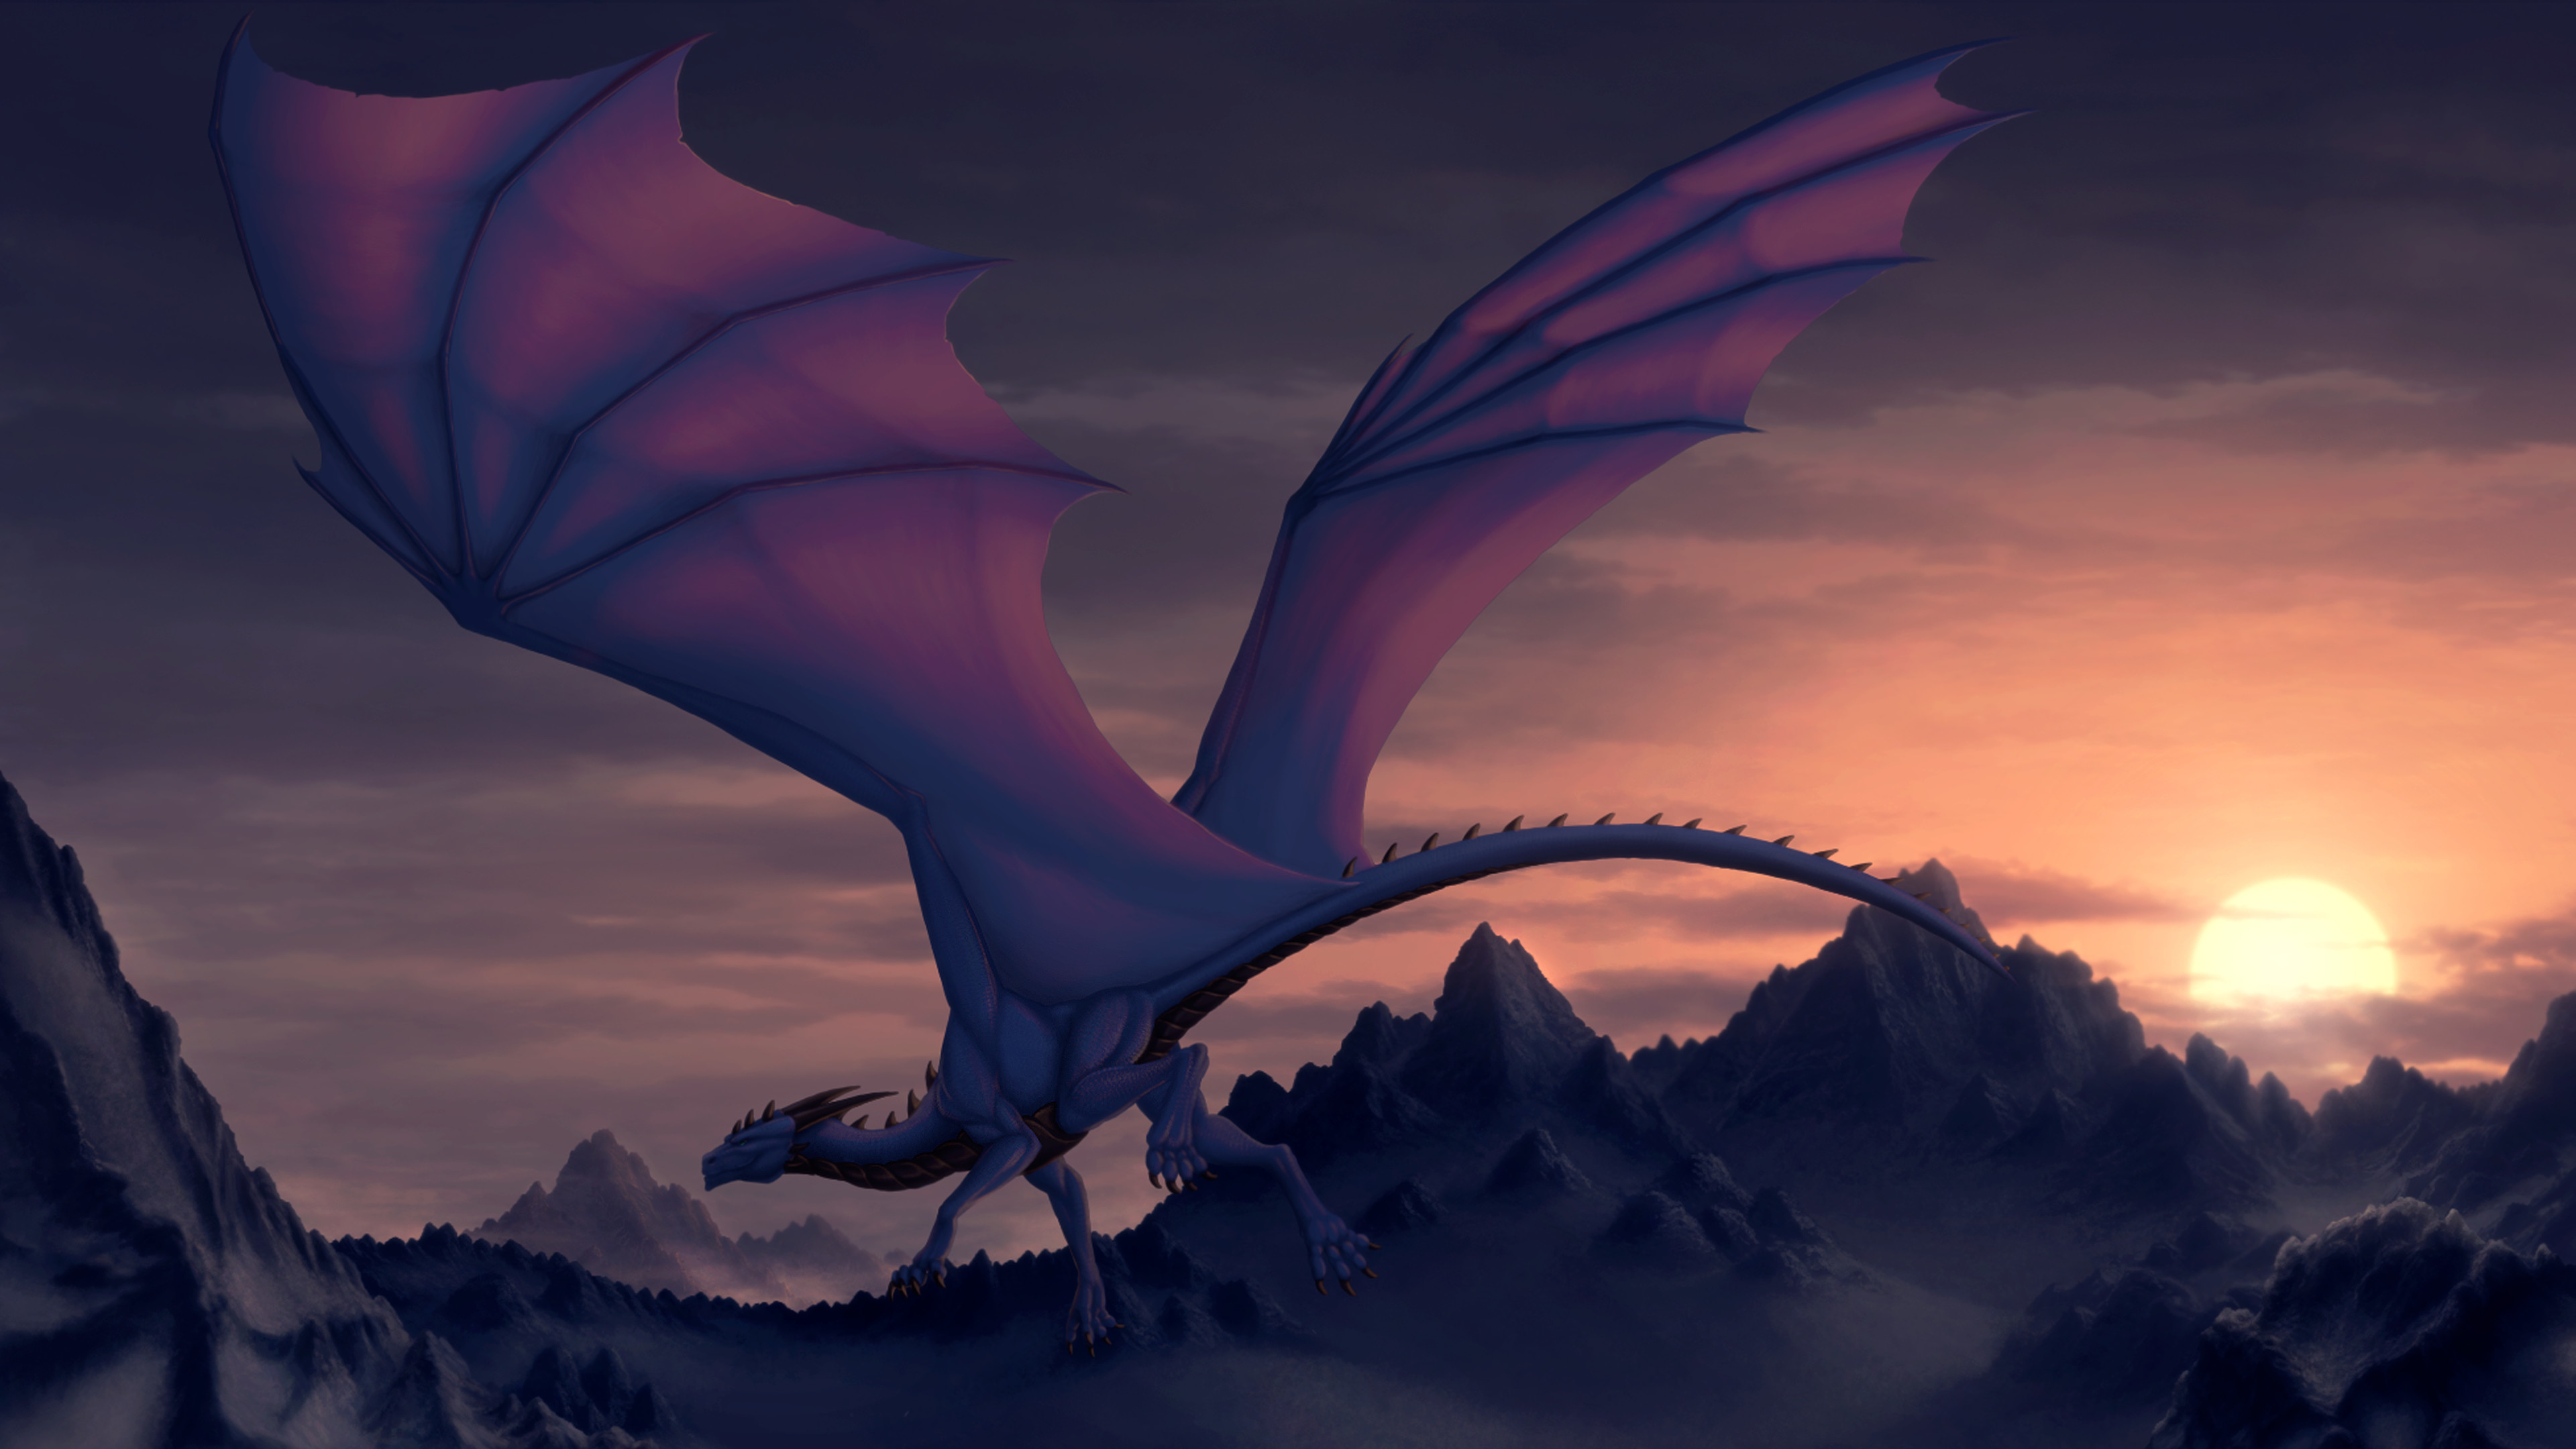 Res: 3840x2160, Images For > Purple Dragon Wallpaper